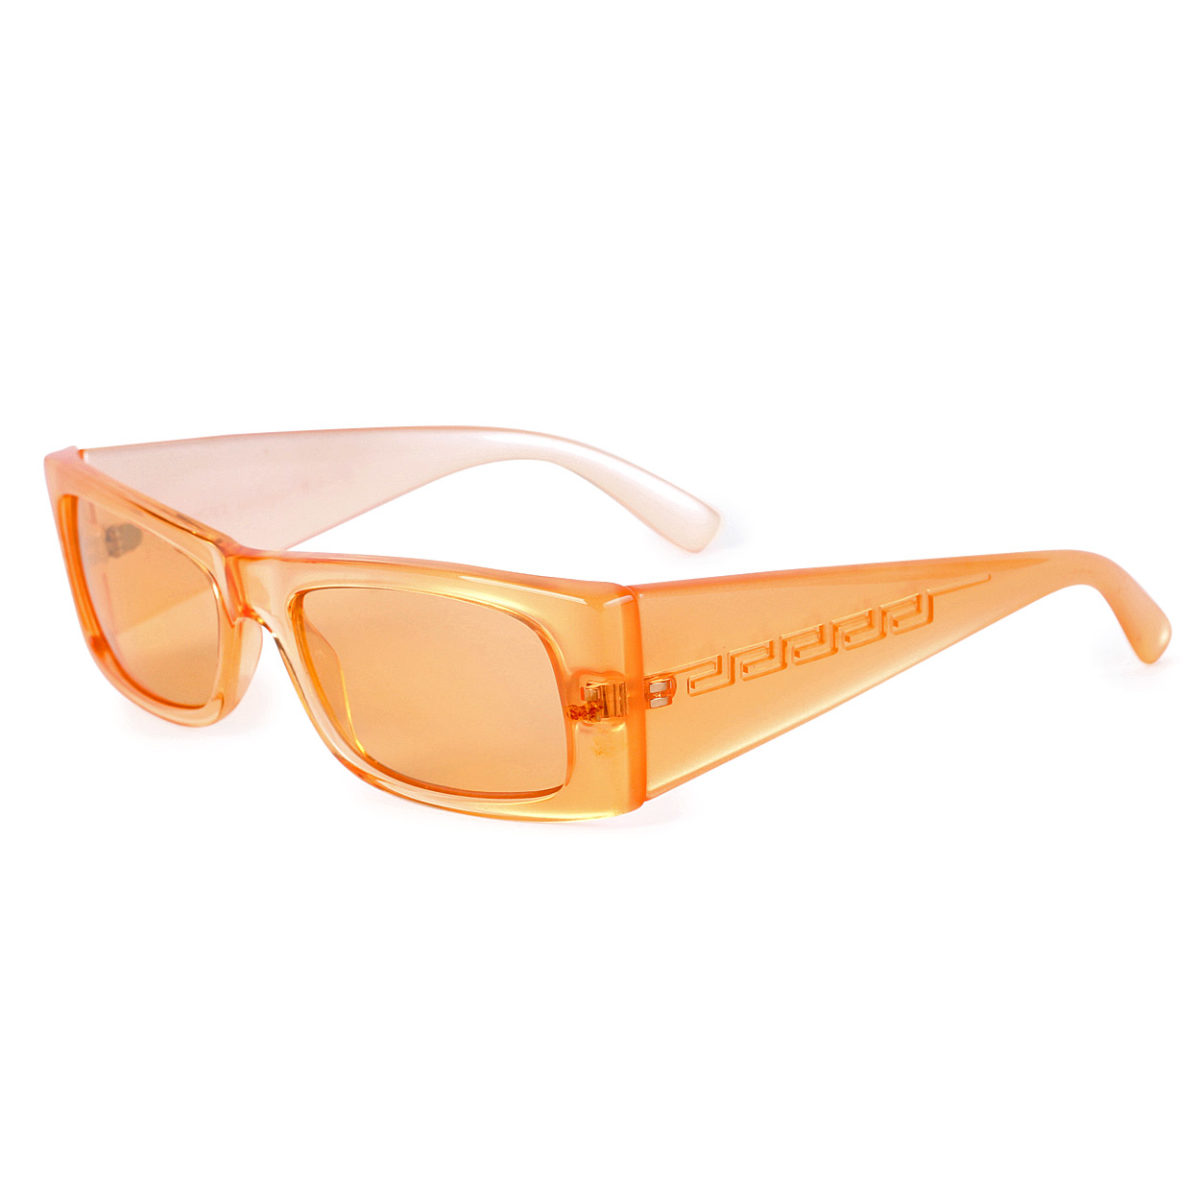 1b5a9136ccc4 VERSACE Retro Greek Key Motif Sunglasses Orange